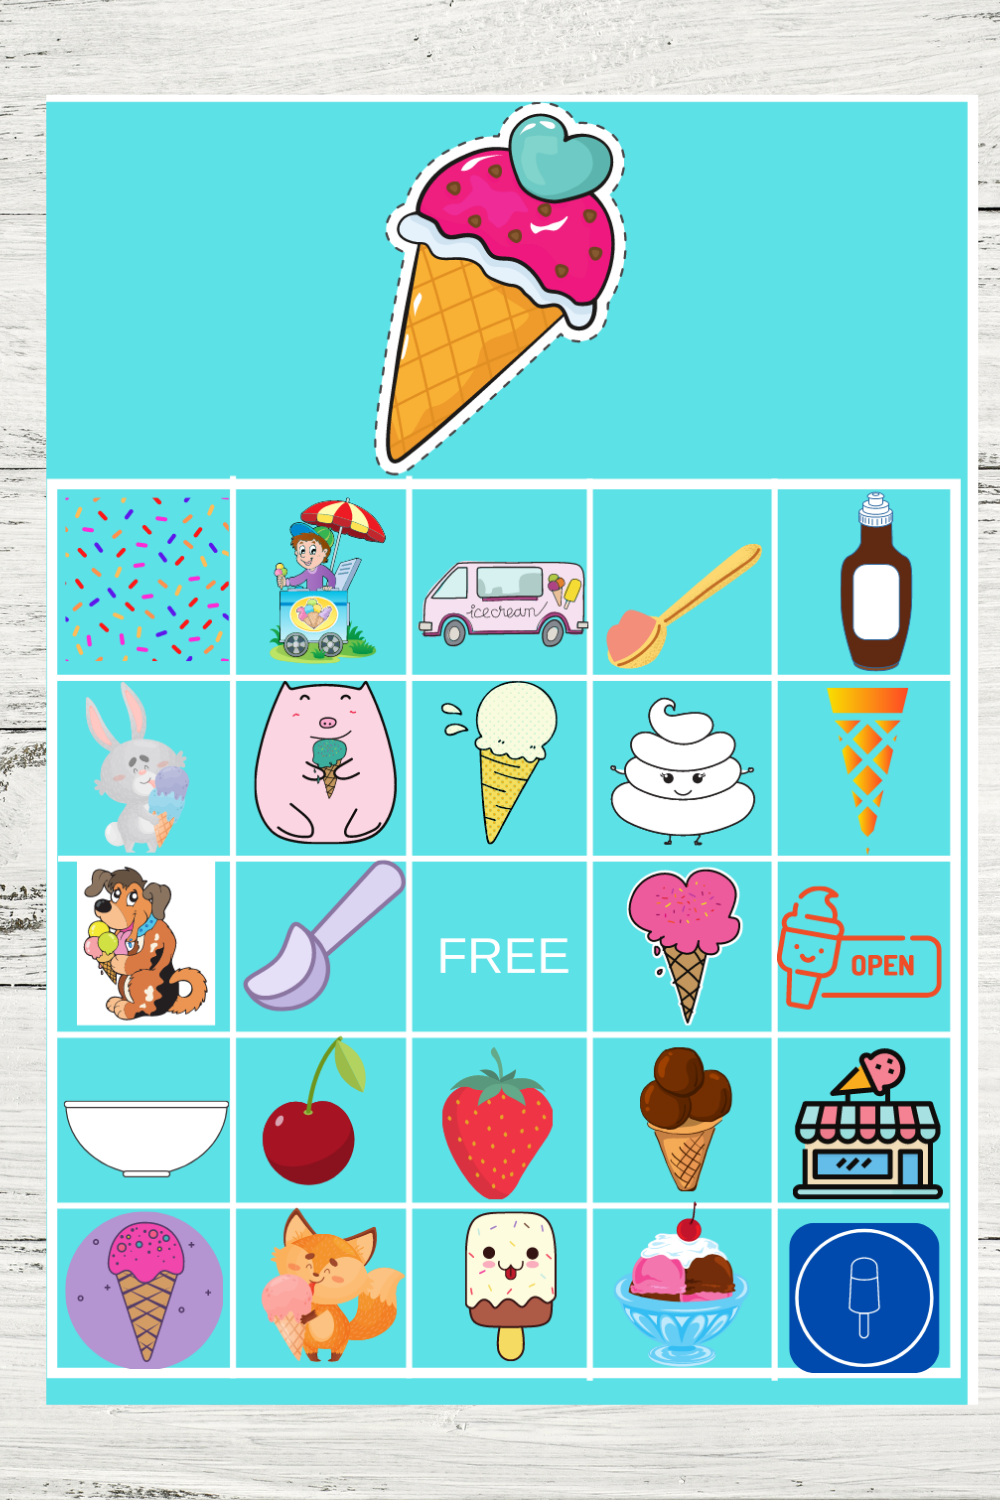 ice cream birthday party game ideas for toddler's birthday party